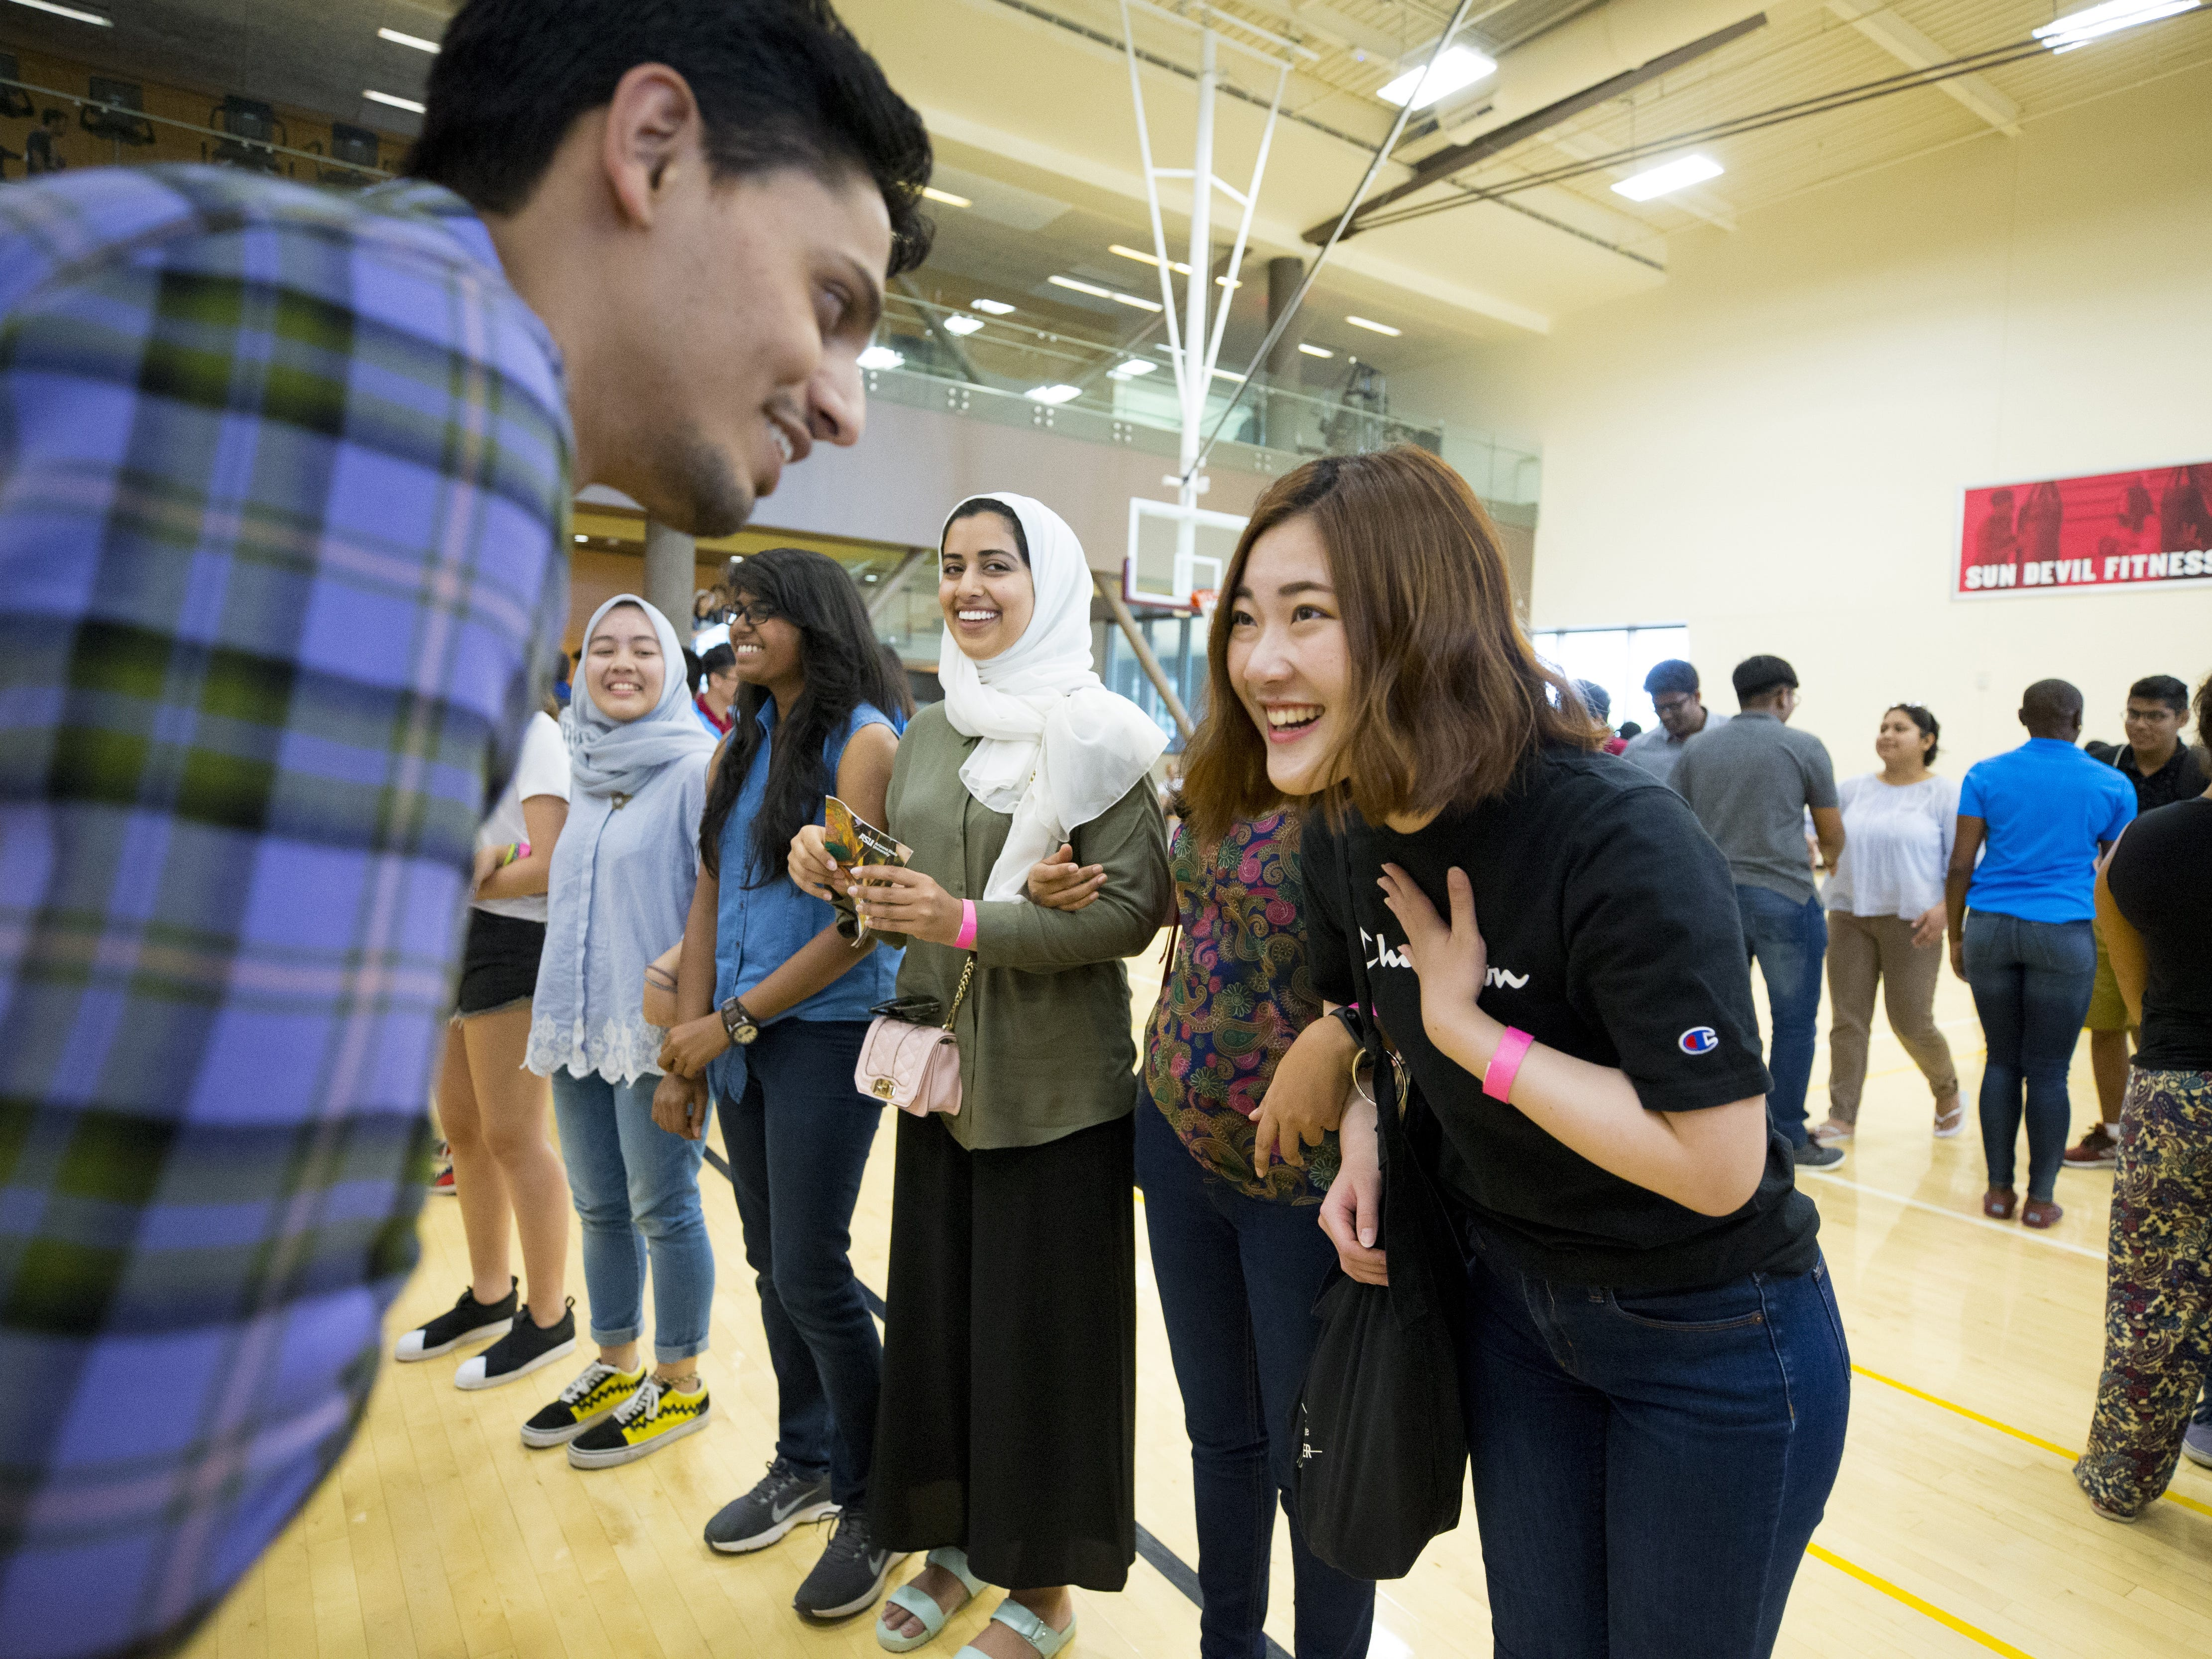 ASU international students Rohan Shasbi, from India, introduces himself to Natsuki Kanno, from Japan, during Play Fair at the Sun Devil Fitness Center in Tempe on Aug. 8, 2018.